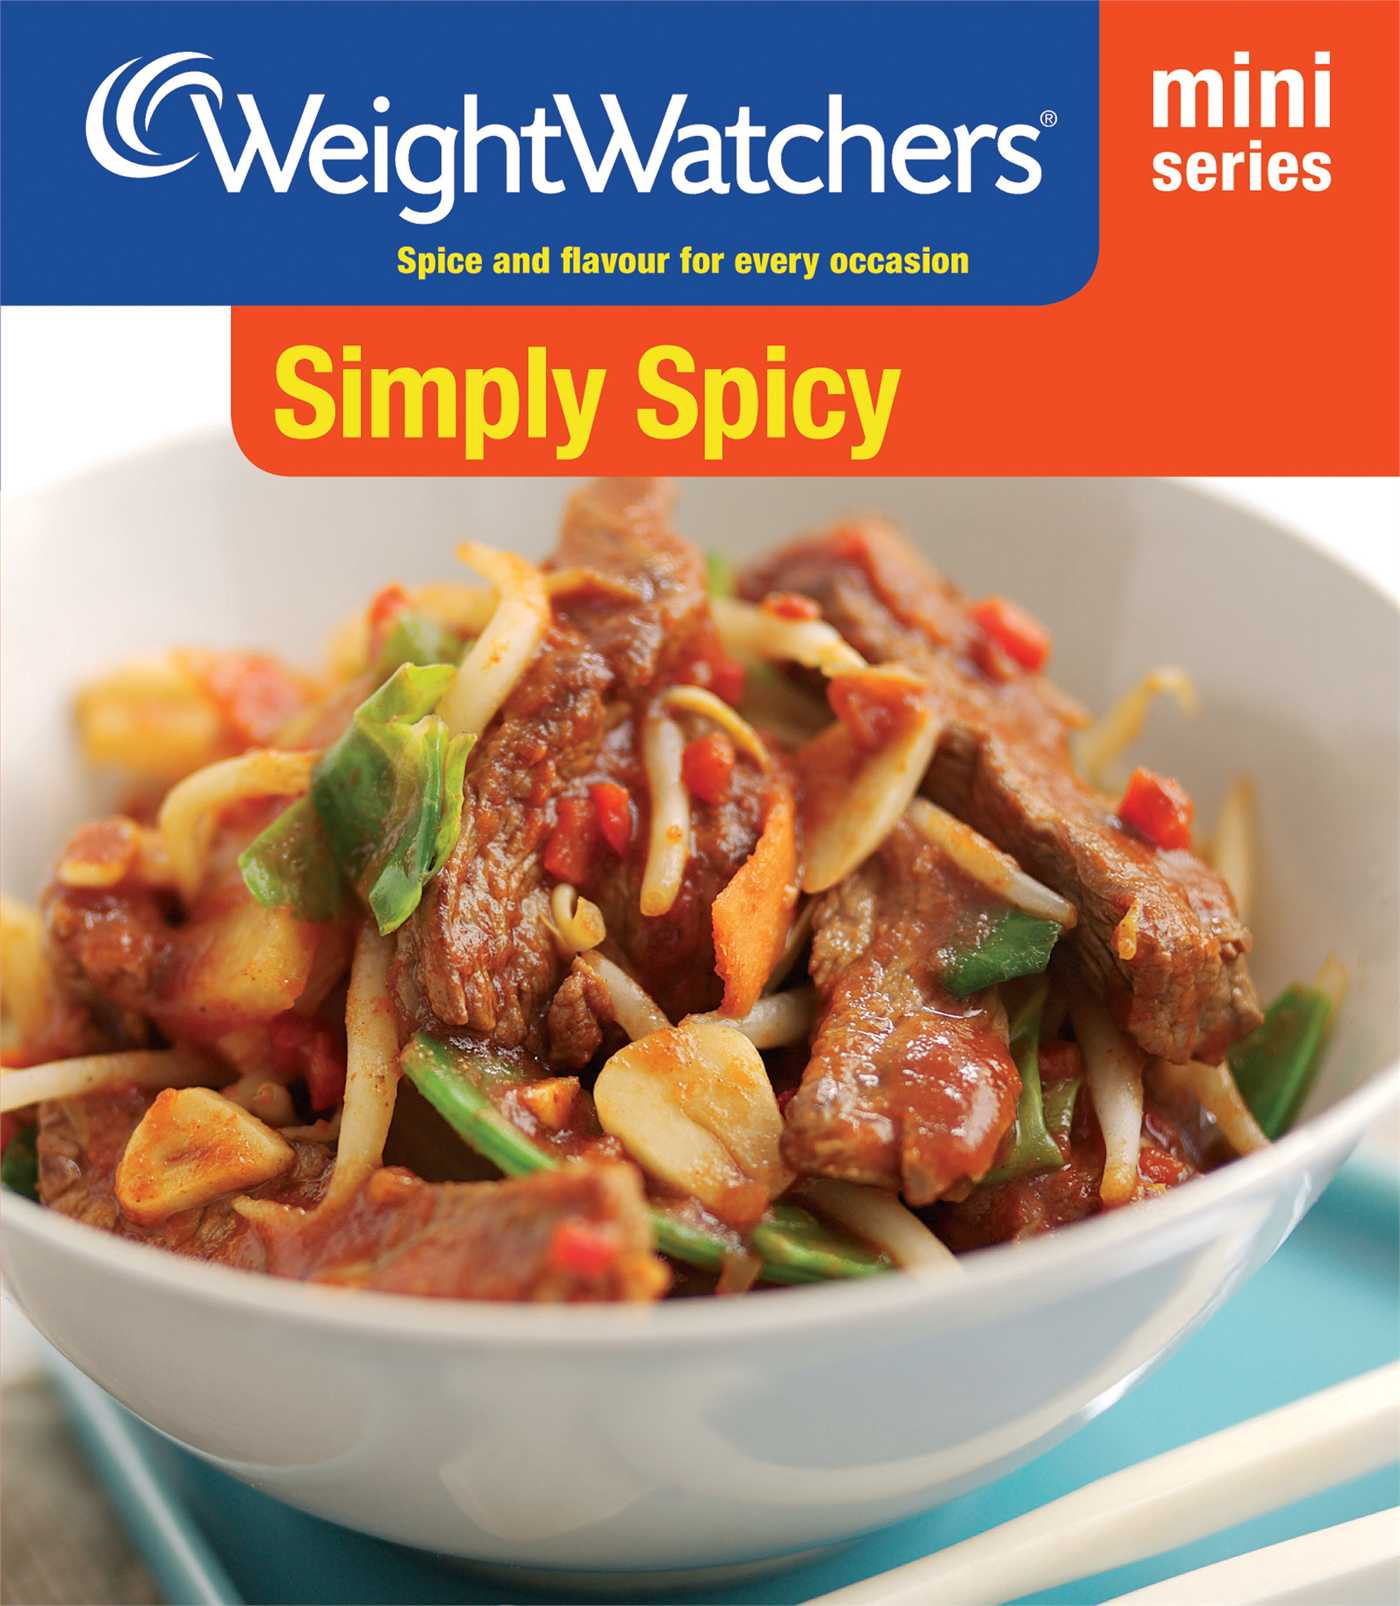 Weight-watchers-mini-series-simply-spicy-9781471110870_hr